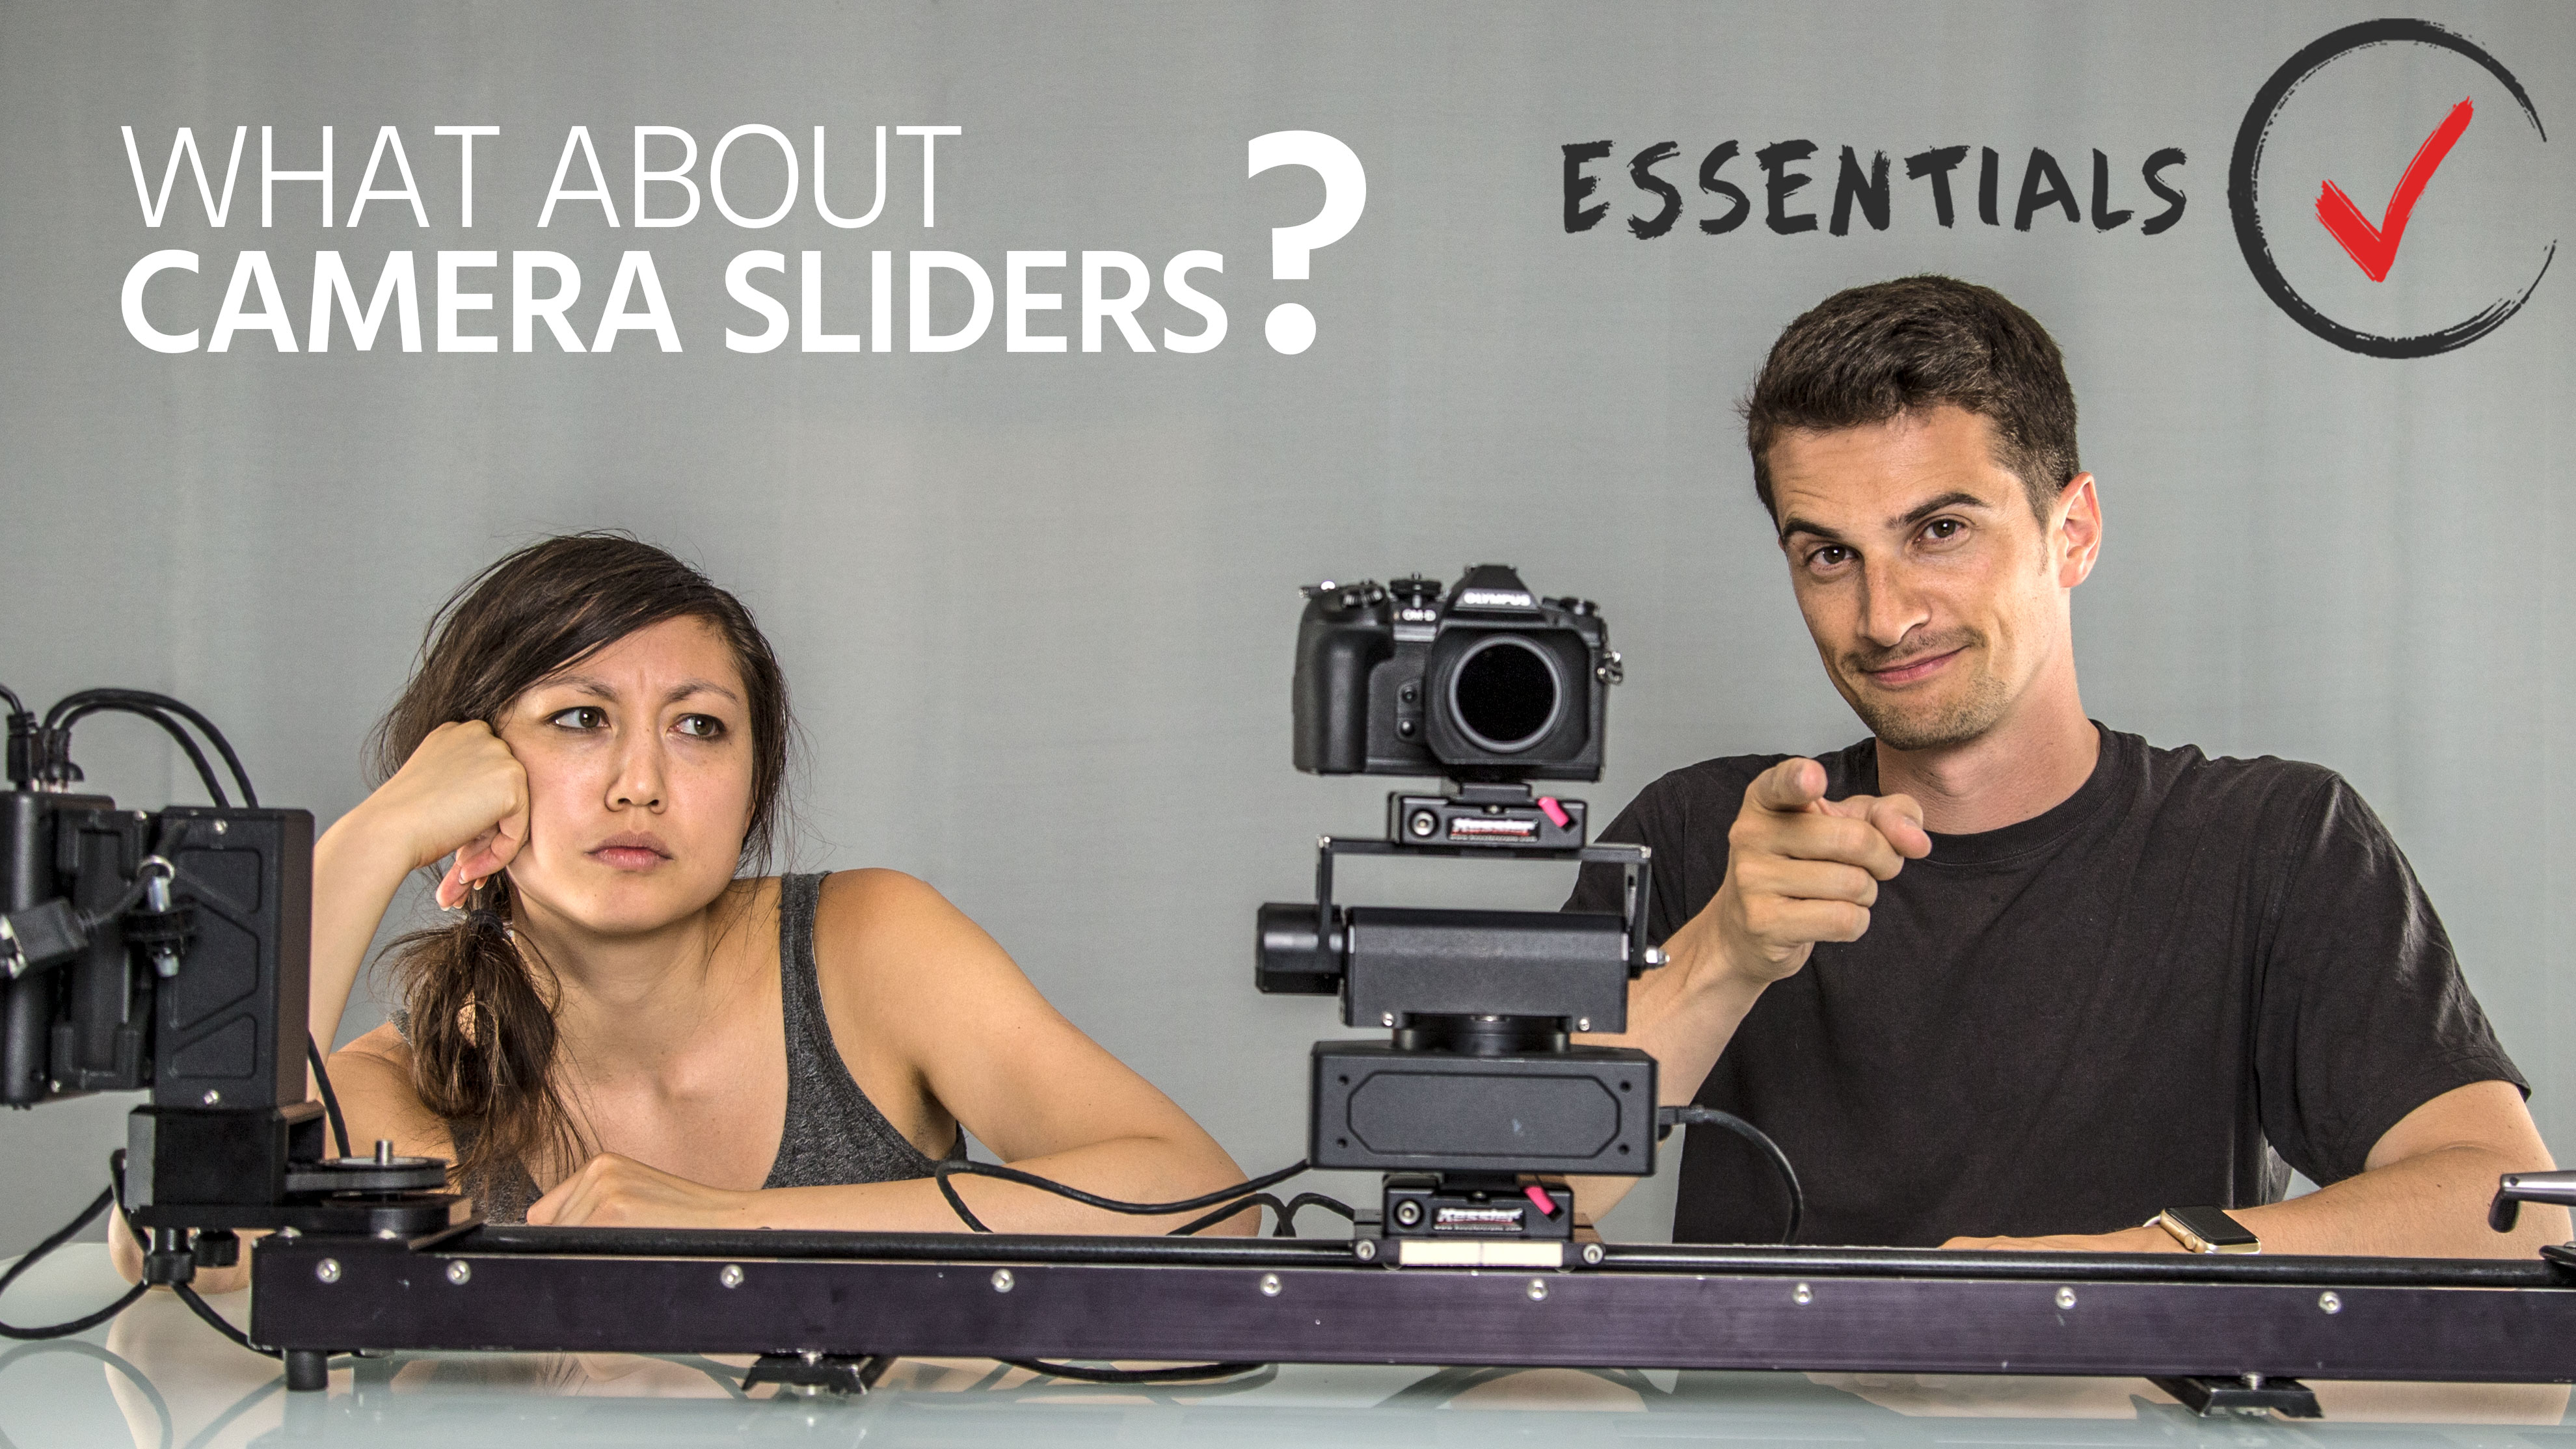 What About Camera Sliders? – How to Use Them, Manually and Motorized